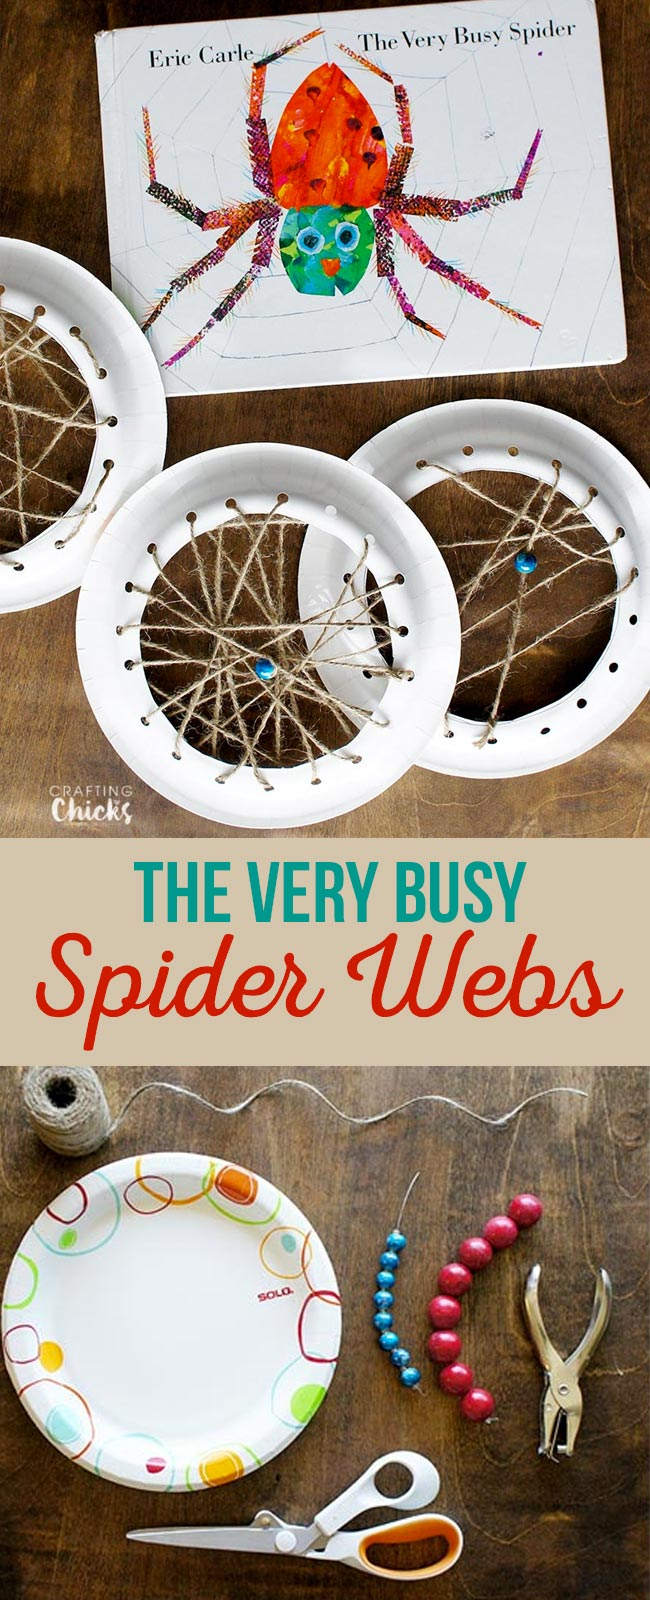 The Very Busy Spider Webs